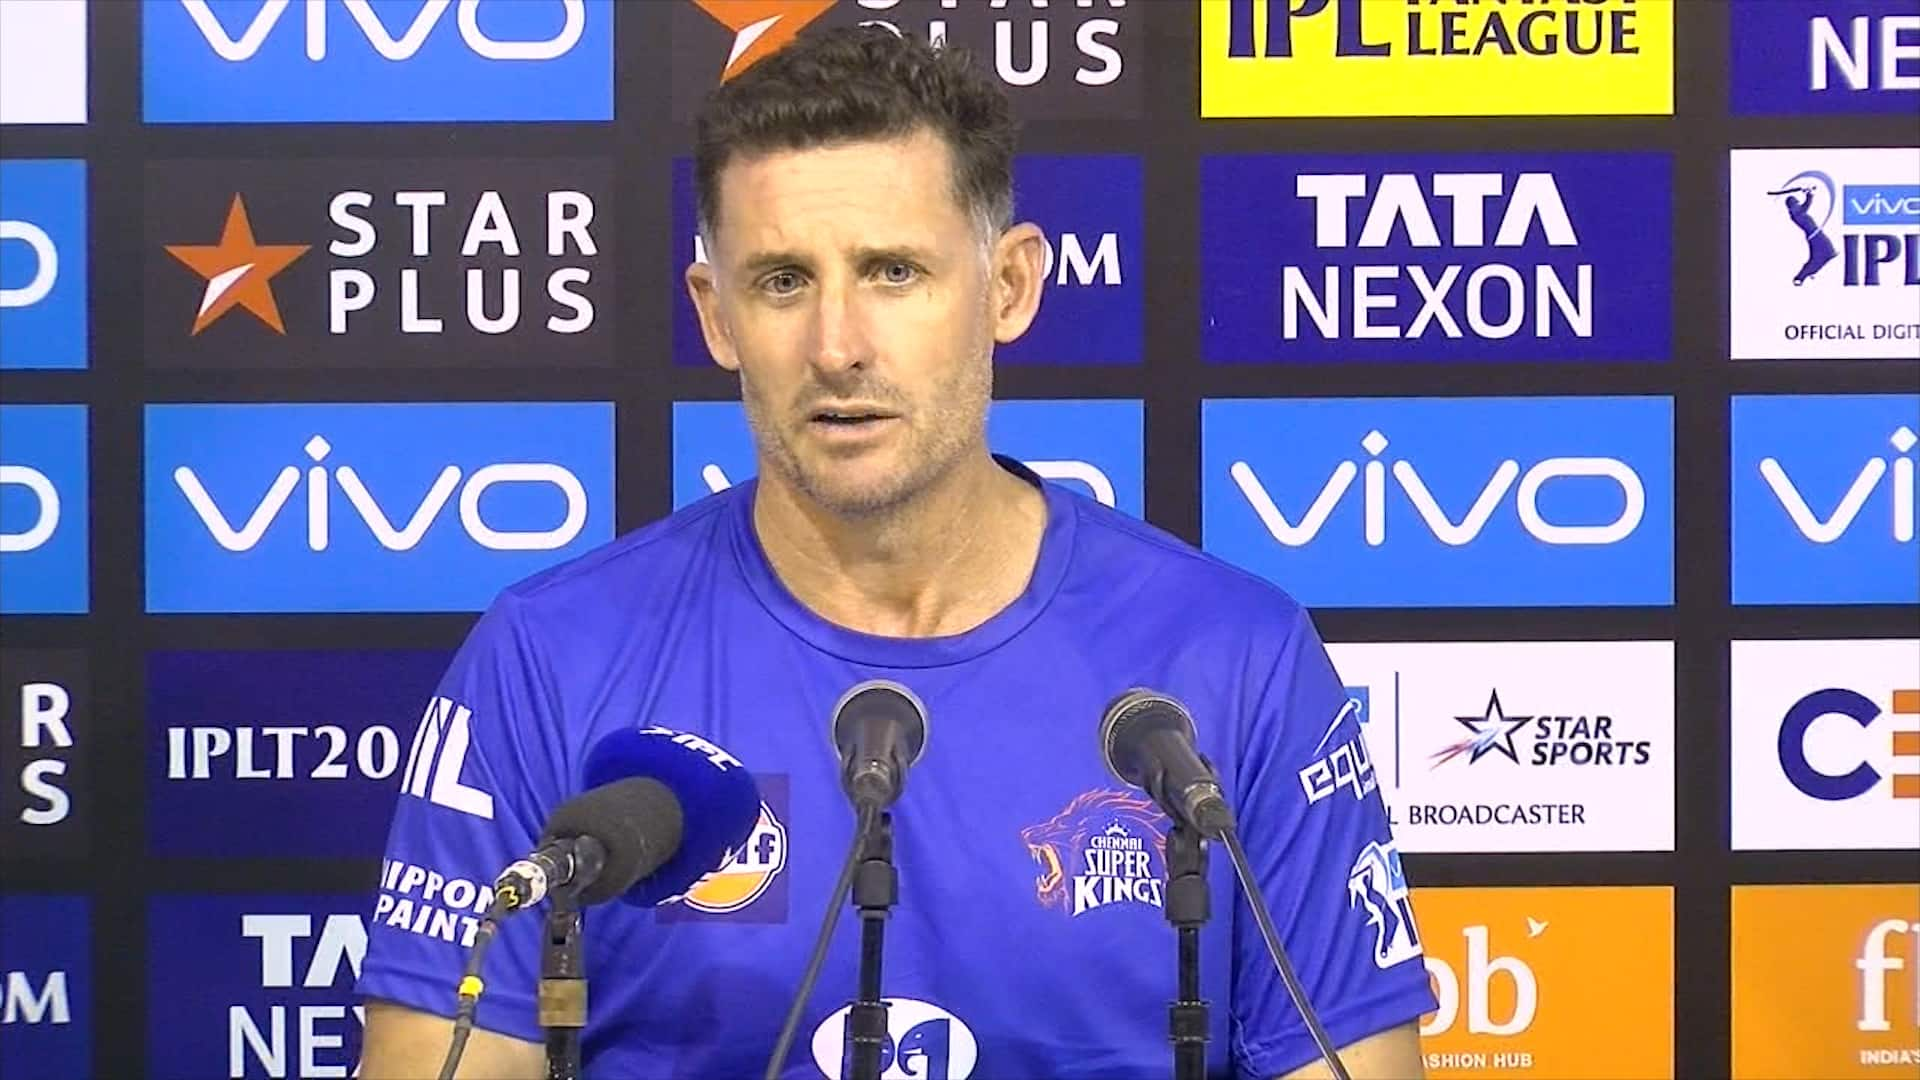 Michael Hussey thinks MS Dhoni is a better tactician than Ricky Ponting